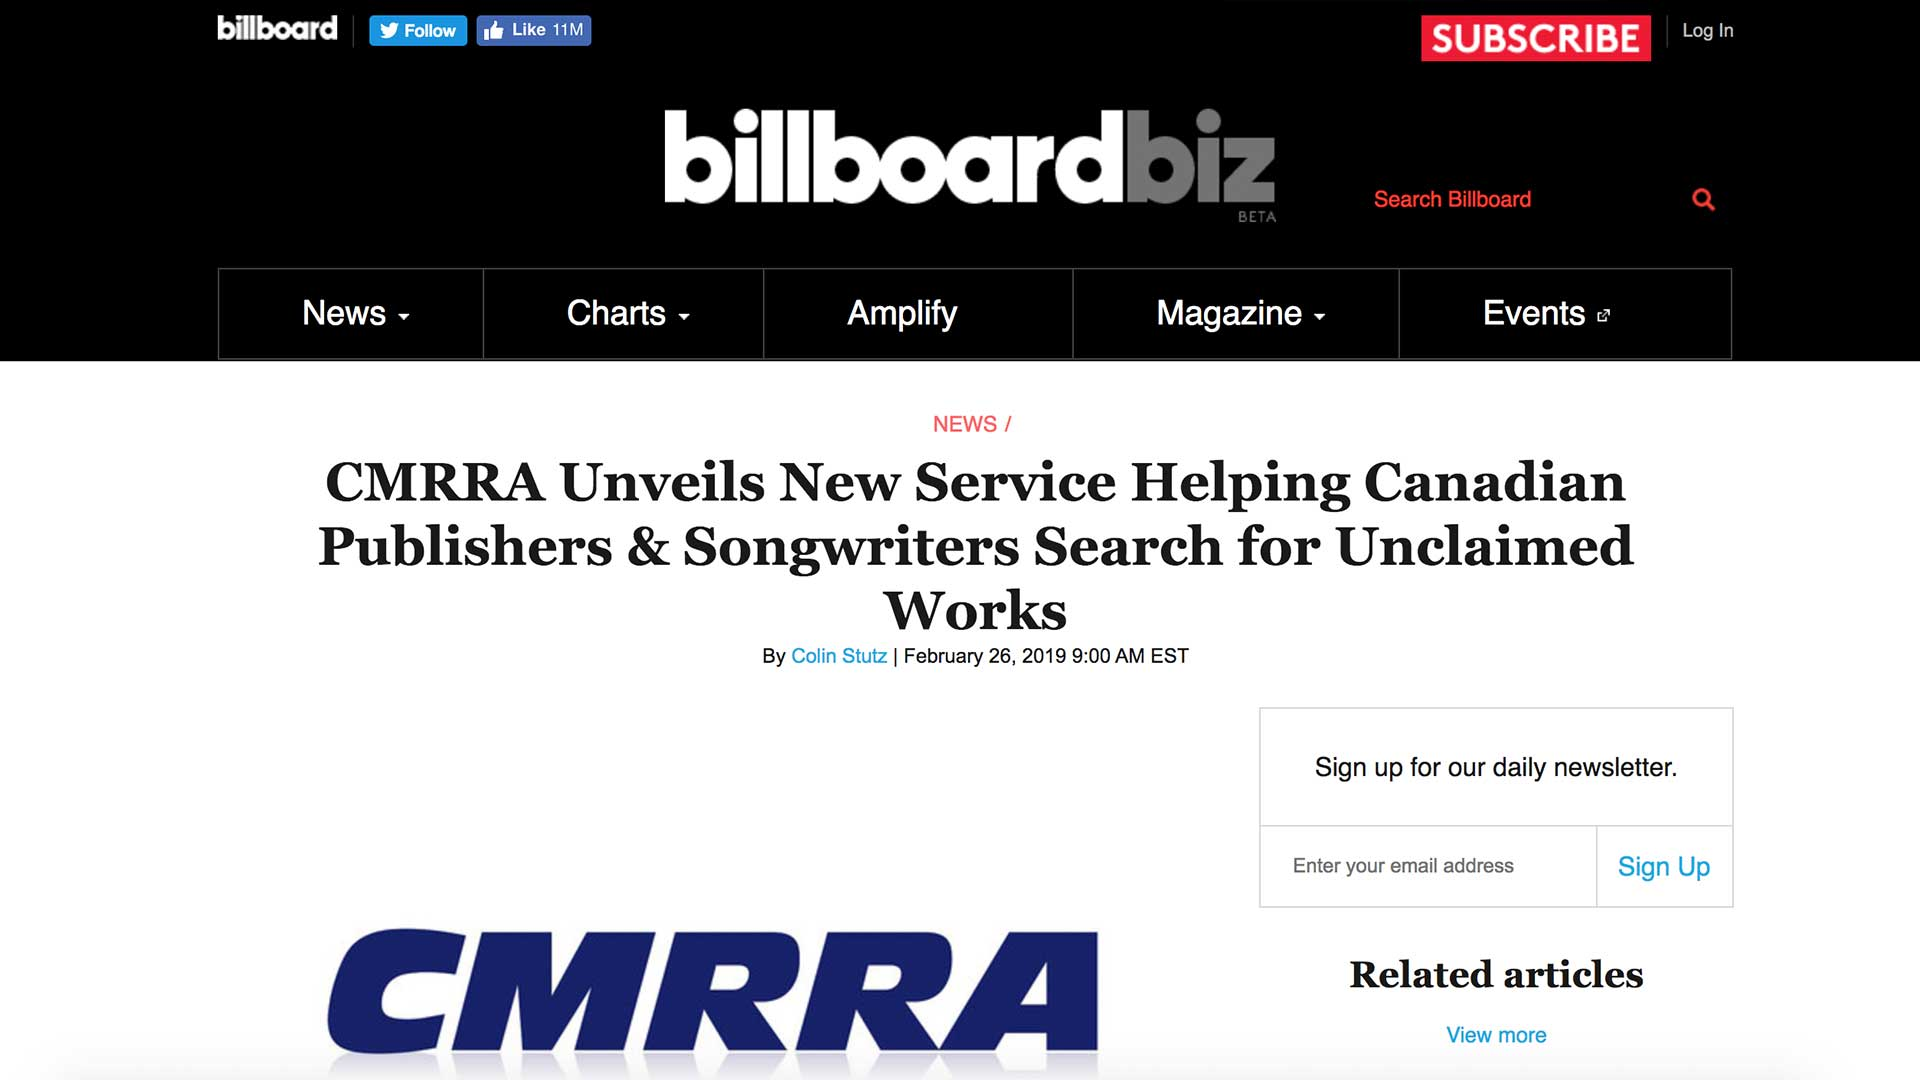 Fairness Rocks News CMRRA Unveils New Service Helping Canadian Publishers & Songwriters Search for Unclaimed Works